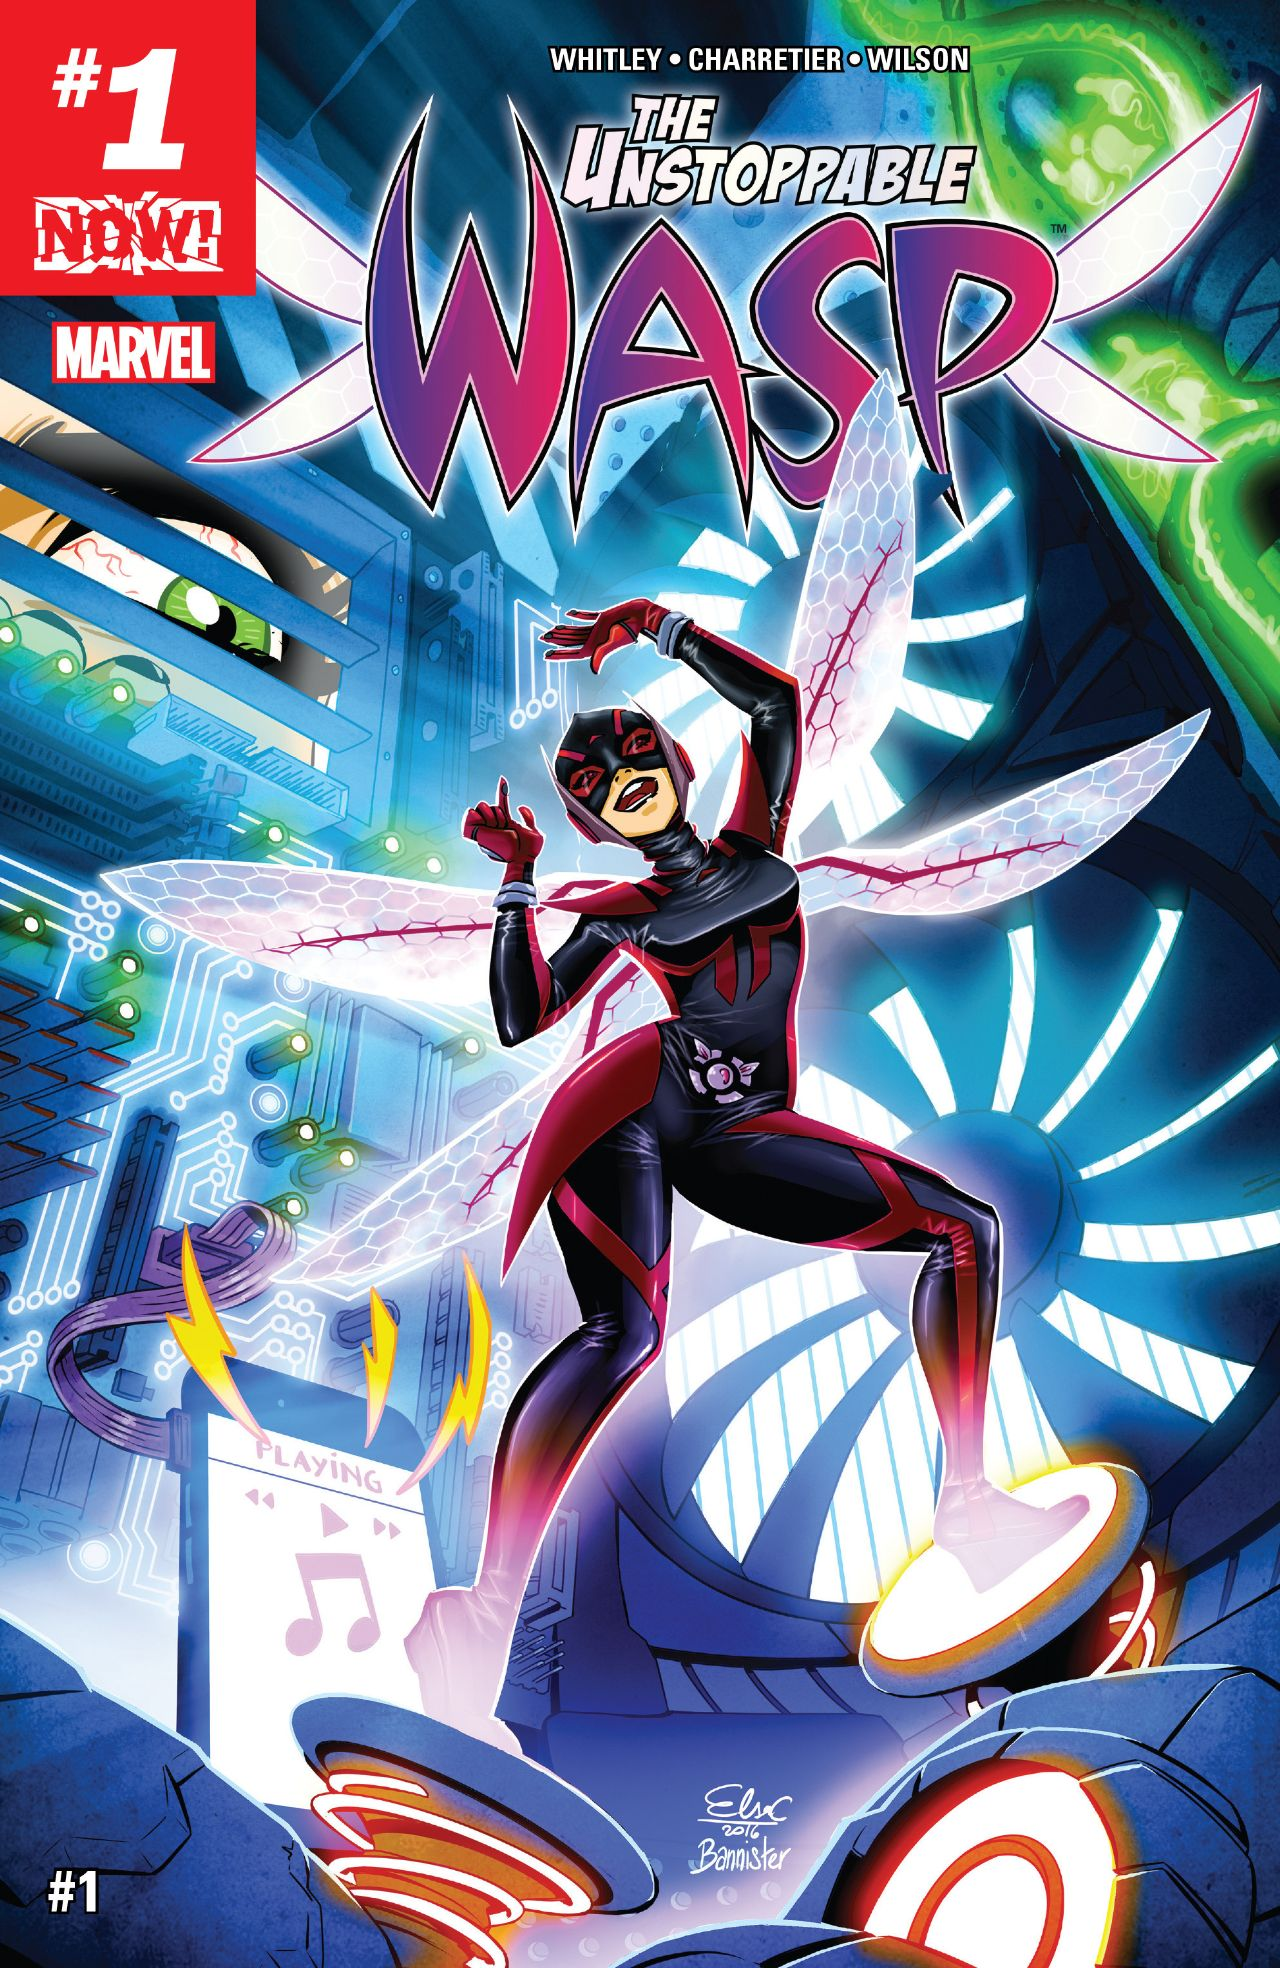 the-unstoppable-wasp-comics-volume-1-issues-2017-ongoing-290984